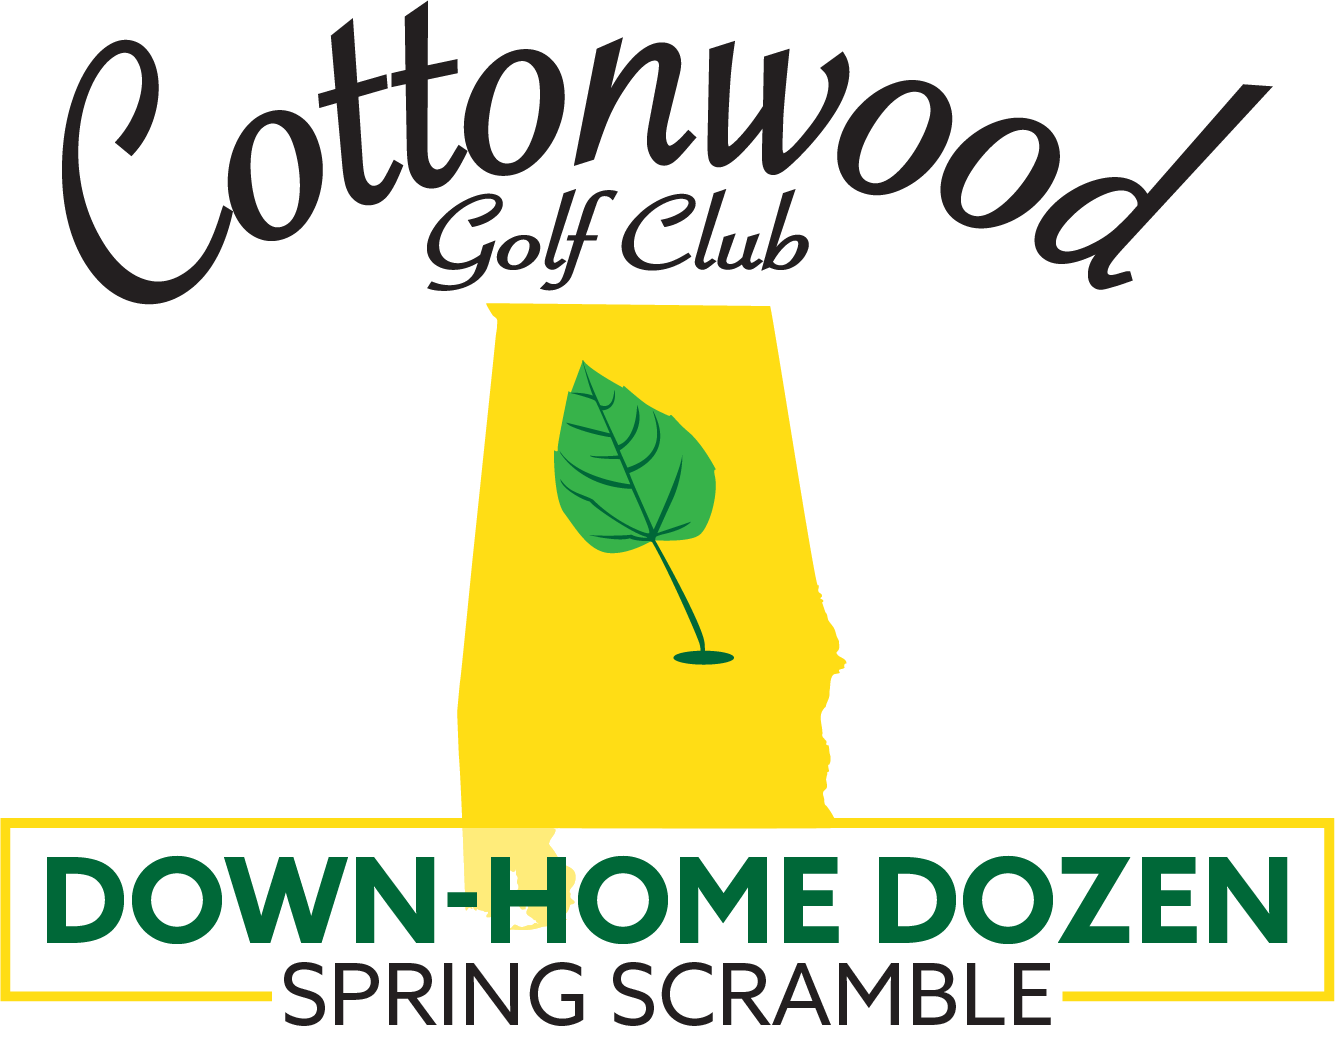 Down-Home Dozen Spring Scramble set for May 19